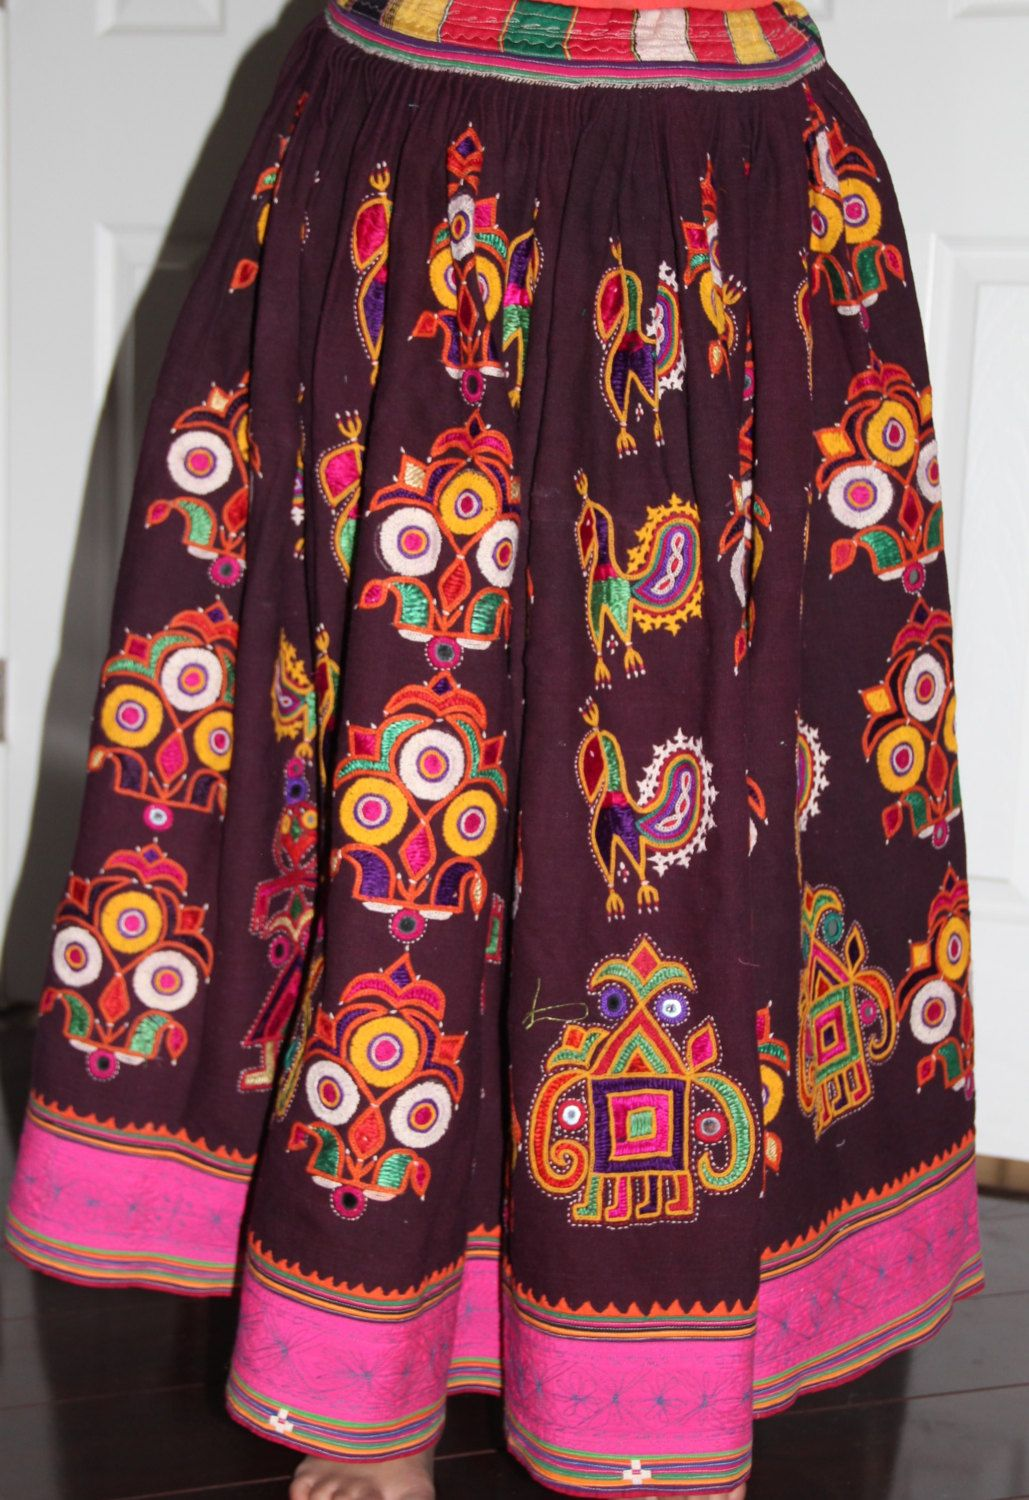 9f4b14a65a521b Beautiful Original Vintage Rabari Ghagra{Skirt} with Kutchi hand embroidery  accentuated with mirror work in Deep Eggplant colour by EleganceByRajul on  Etsy